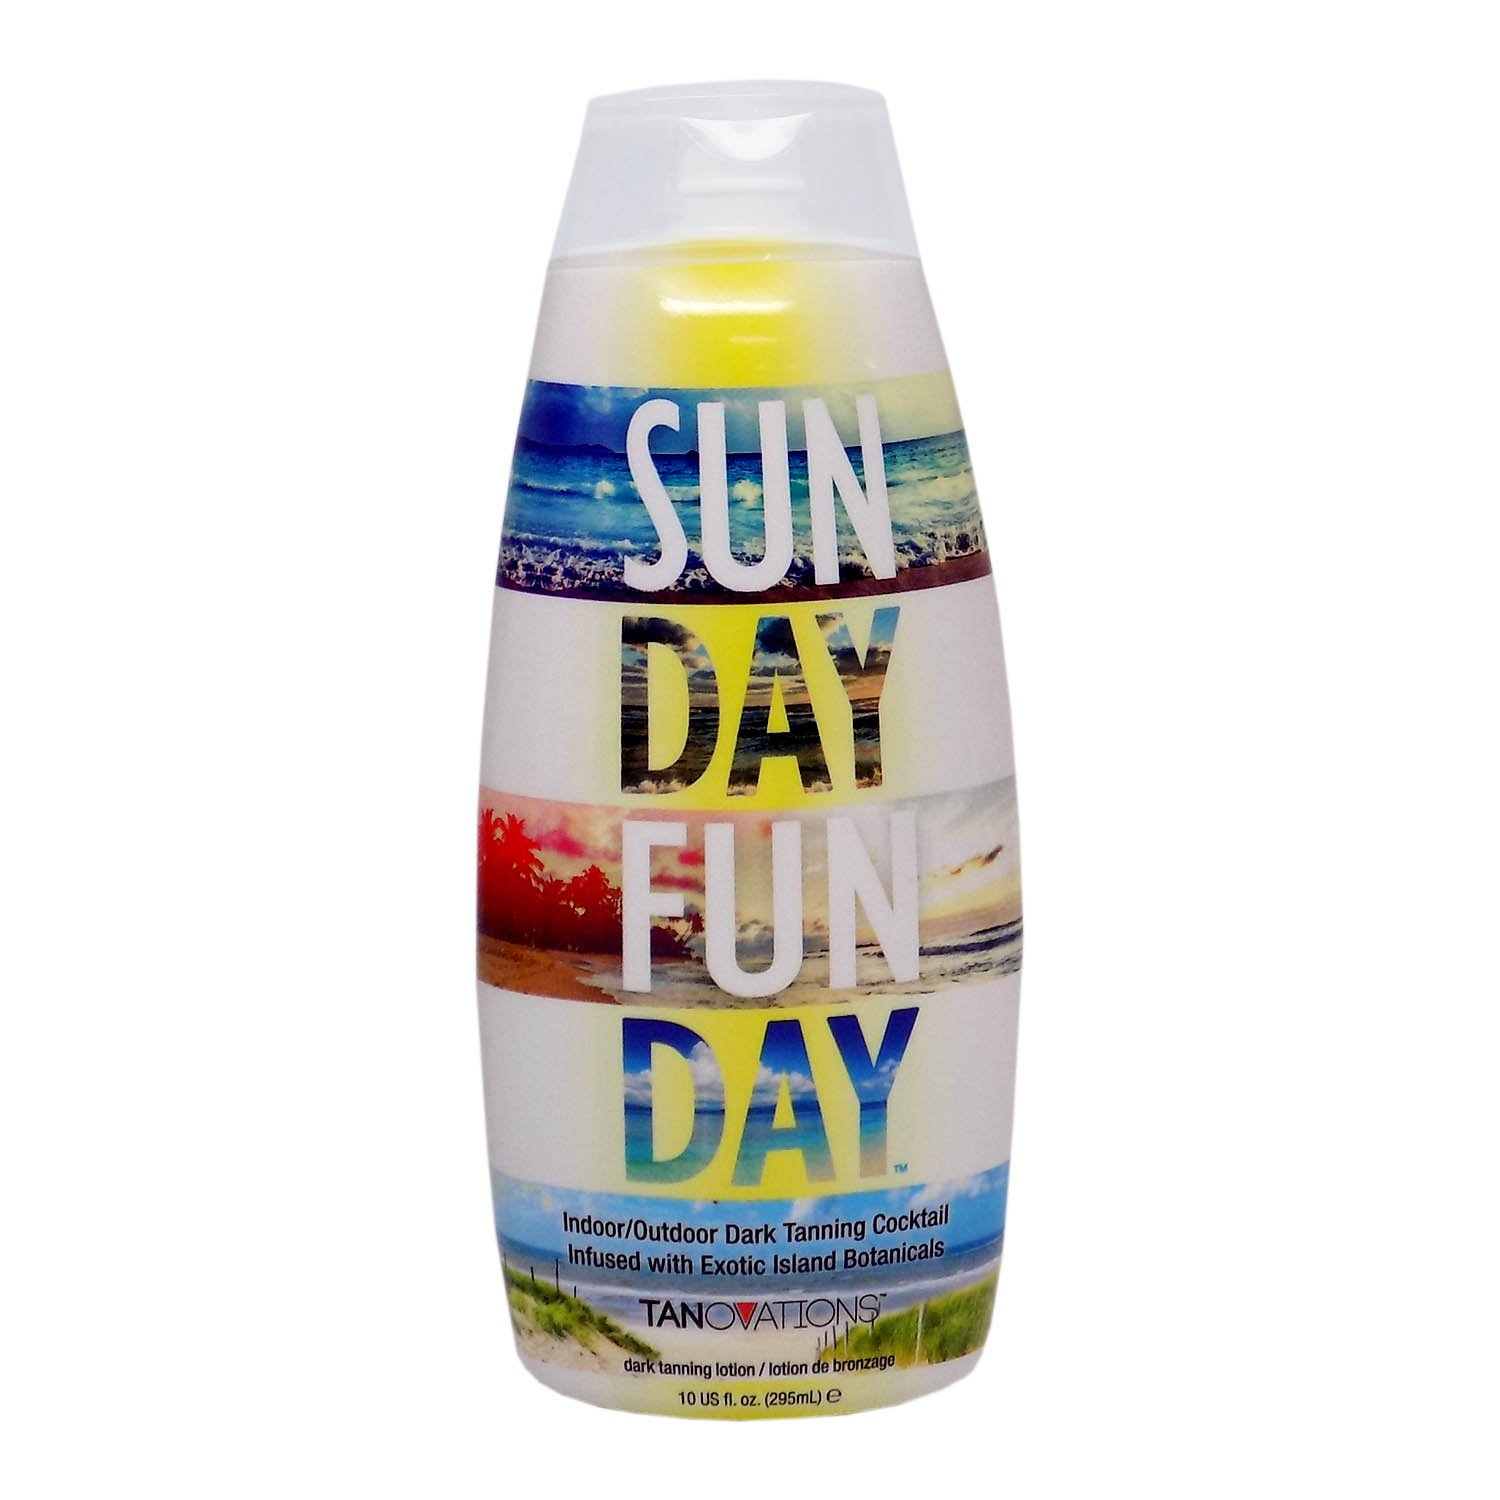 Tanovations SUN DAY FUN DAY Indoor/Outdoor Tanning Cocktail - 10 oz. Ed Hardy Tanning